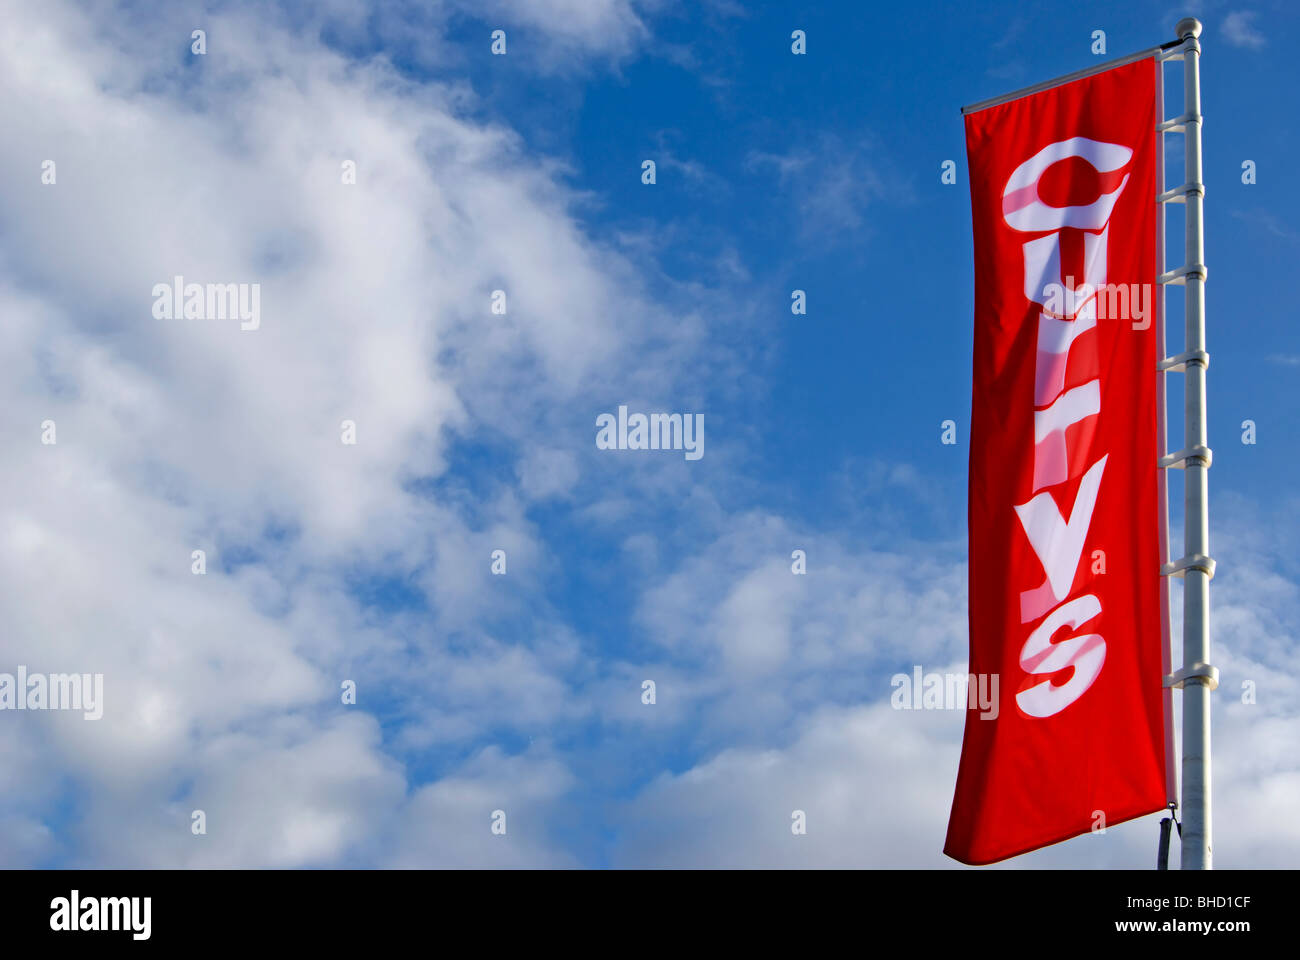 red and white banner for the electrical goods retail chain currys, on the great west road, brentford, west london, - Stock Image